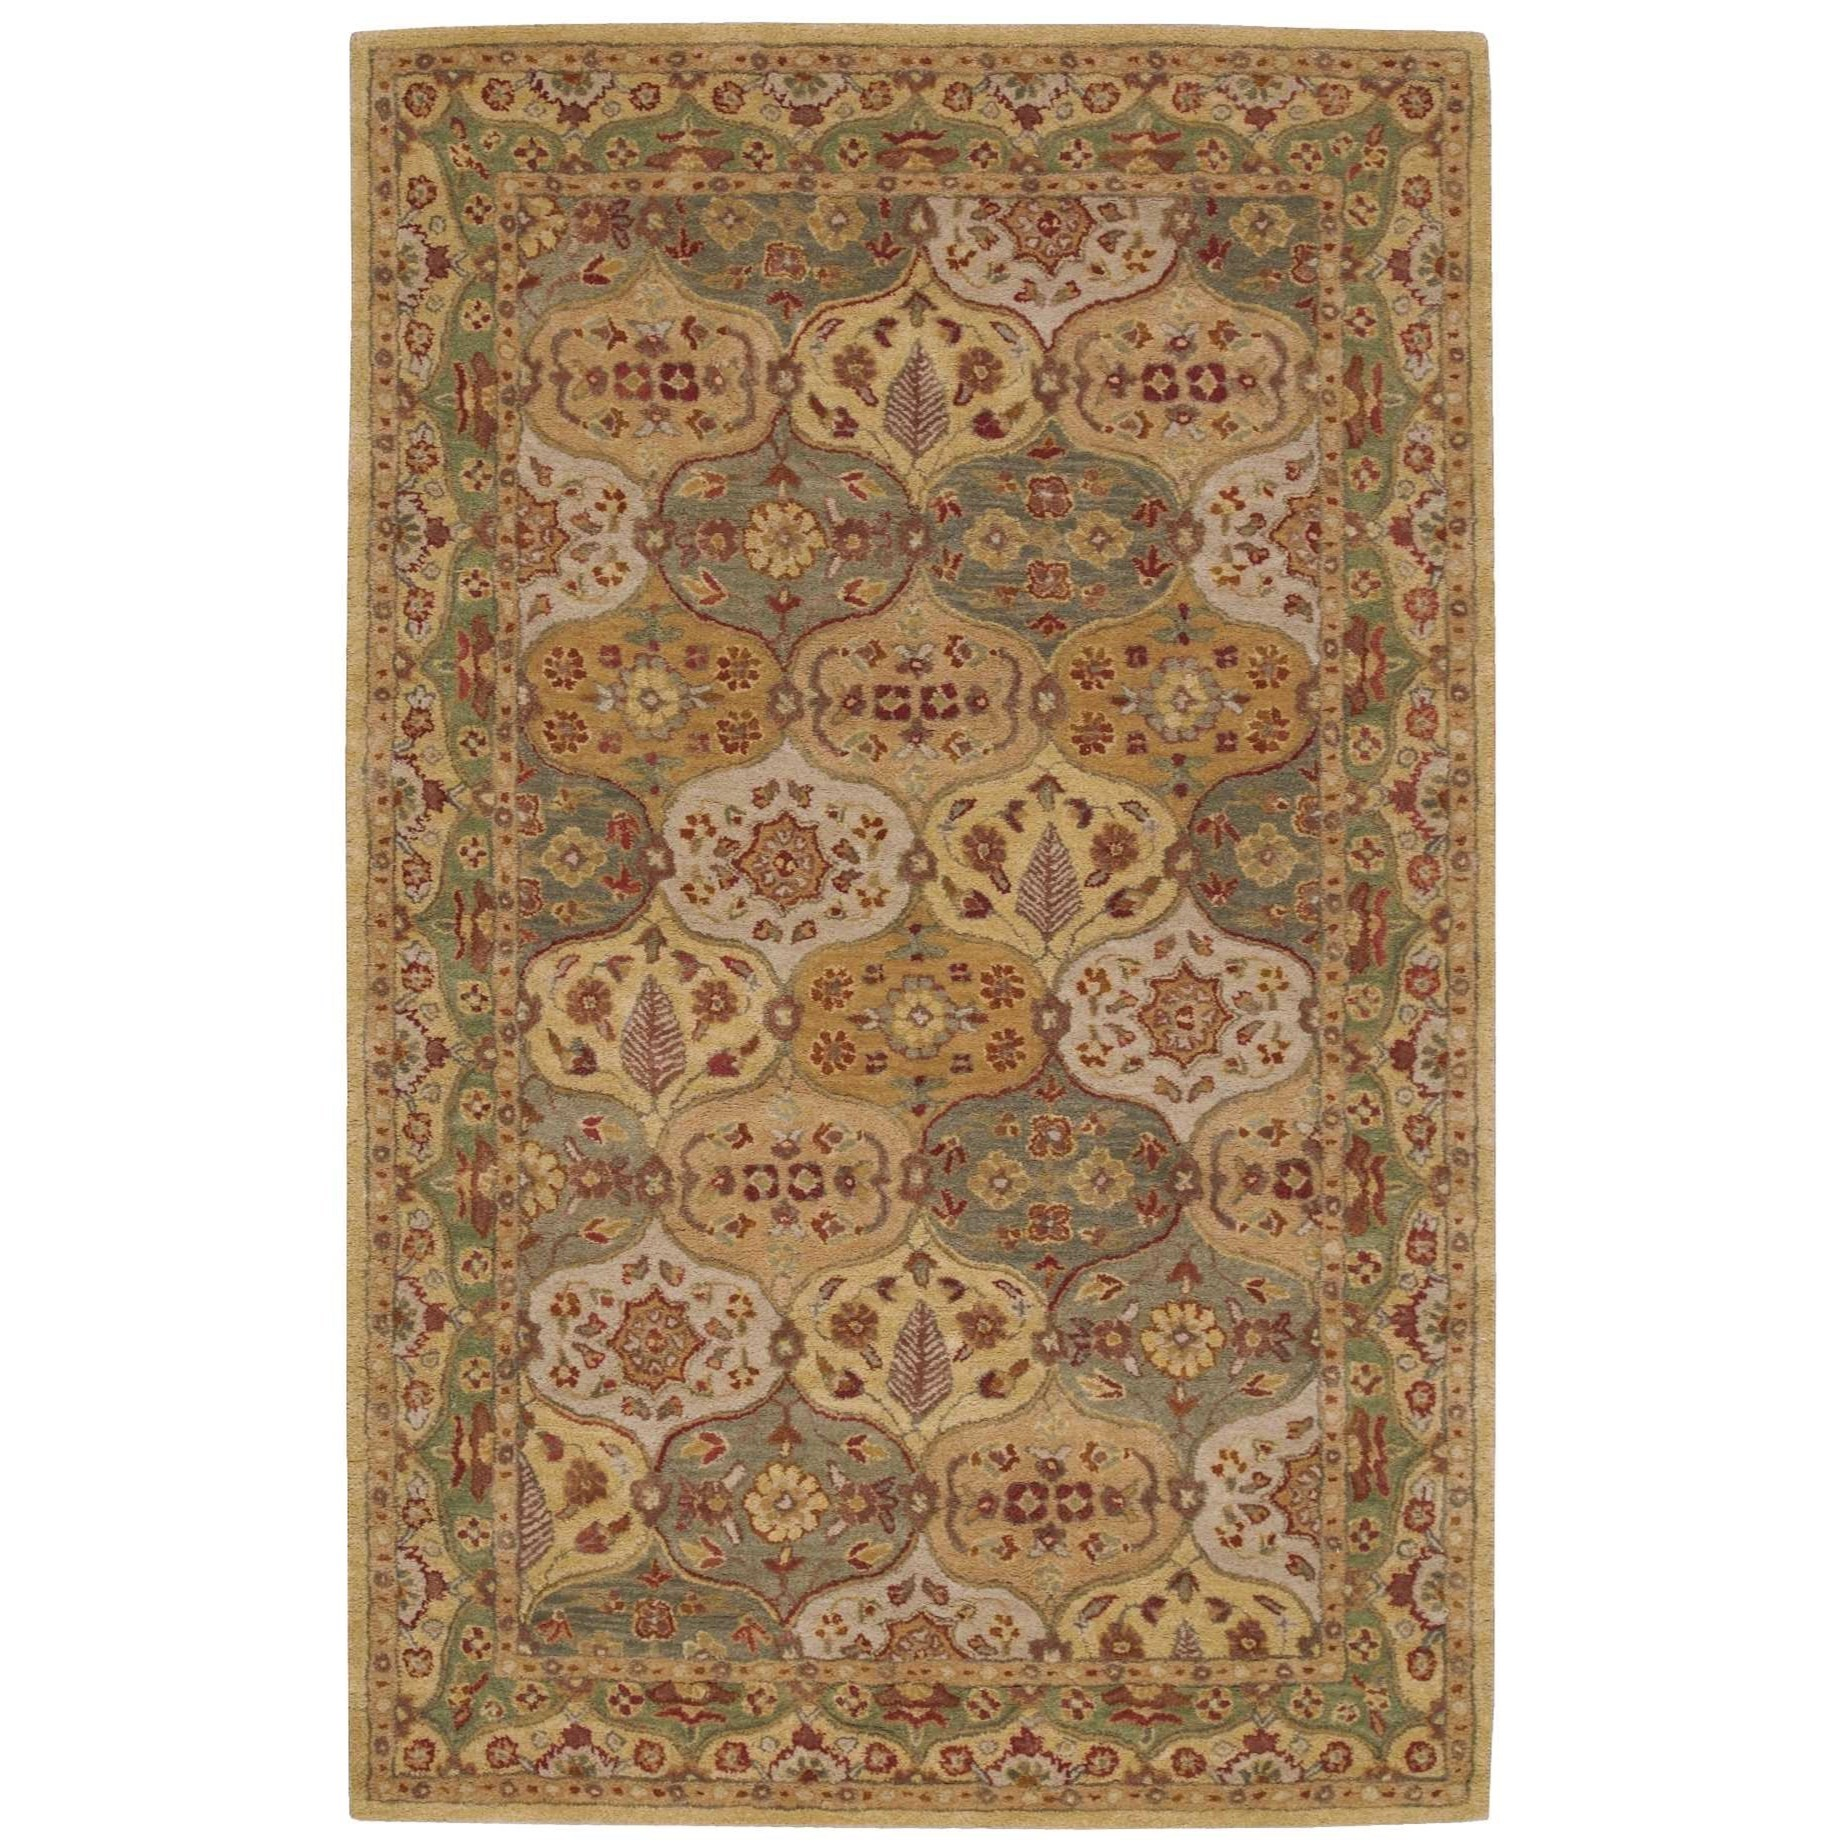 "Nourison India House 3'6"" x 5'6"" Multicolor Rectangle Rug - Item Number: IH03 MTC 36X56"